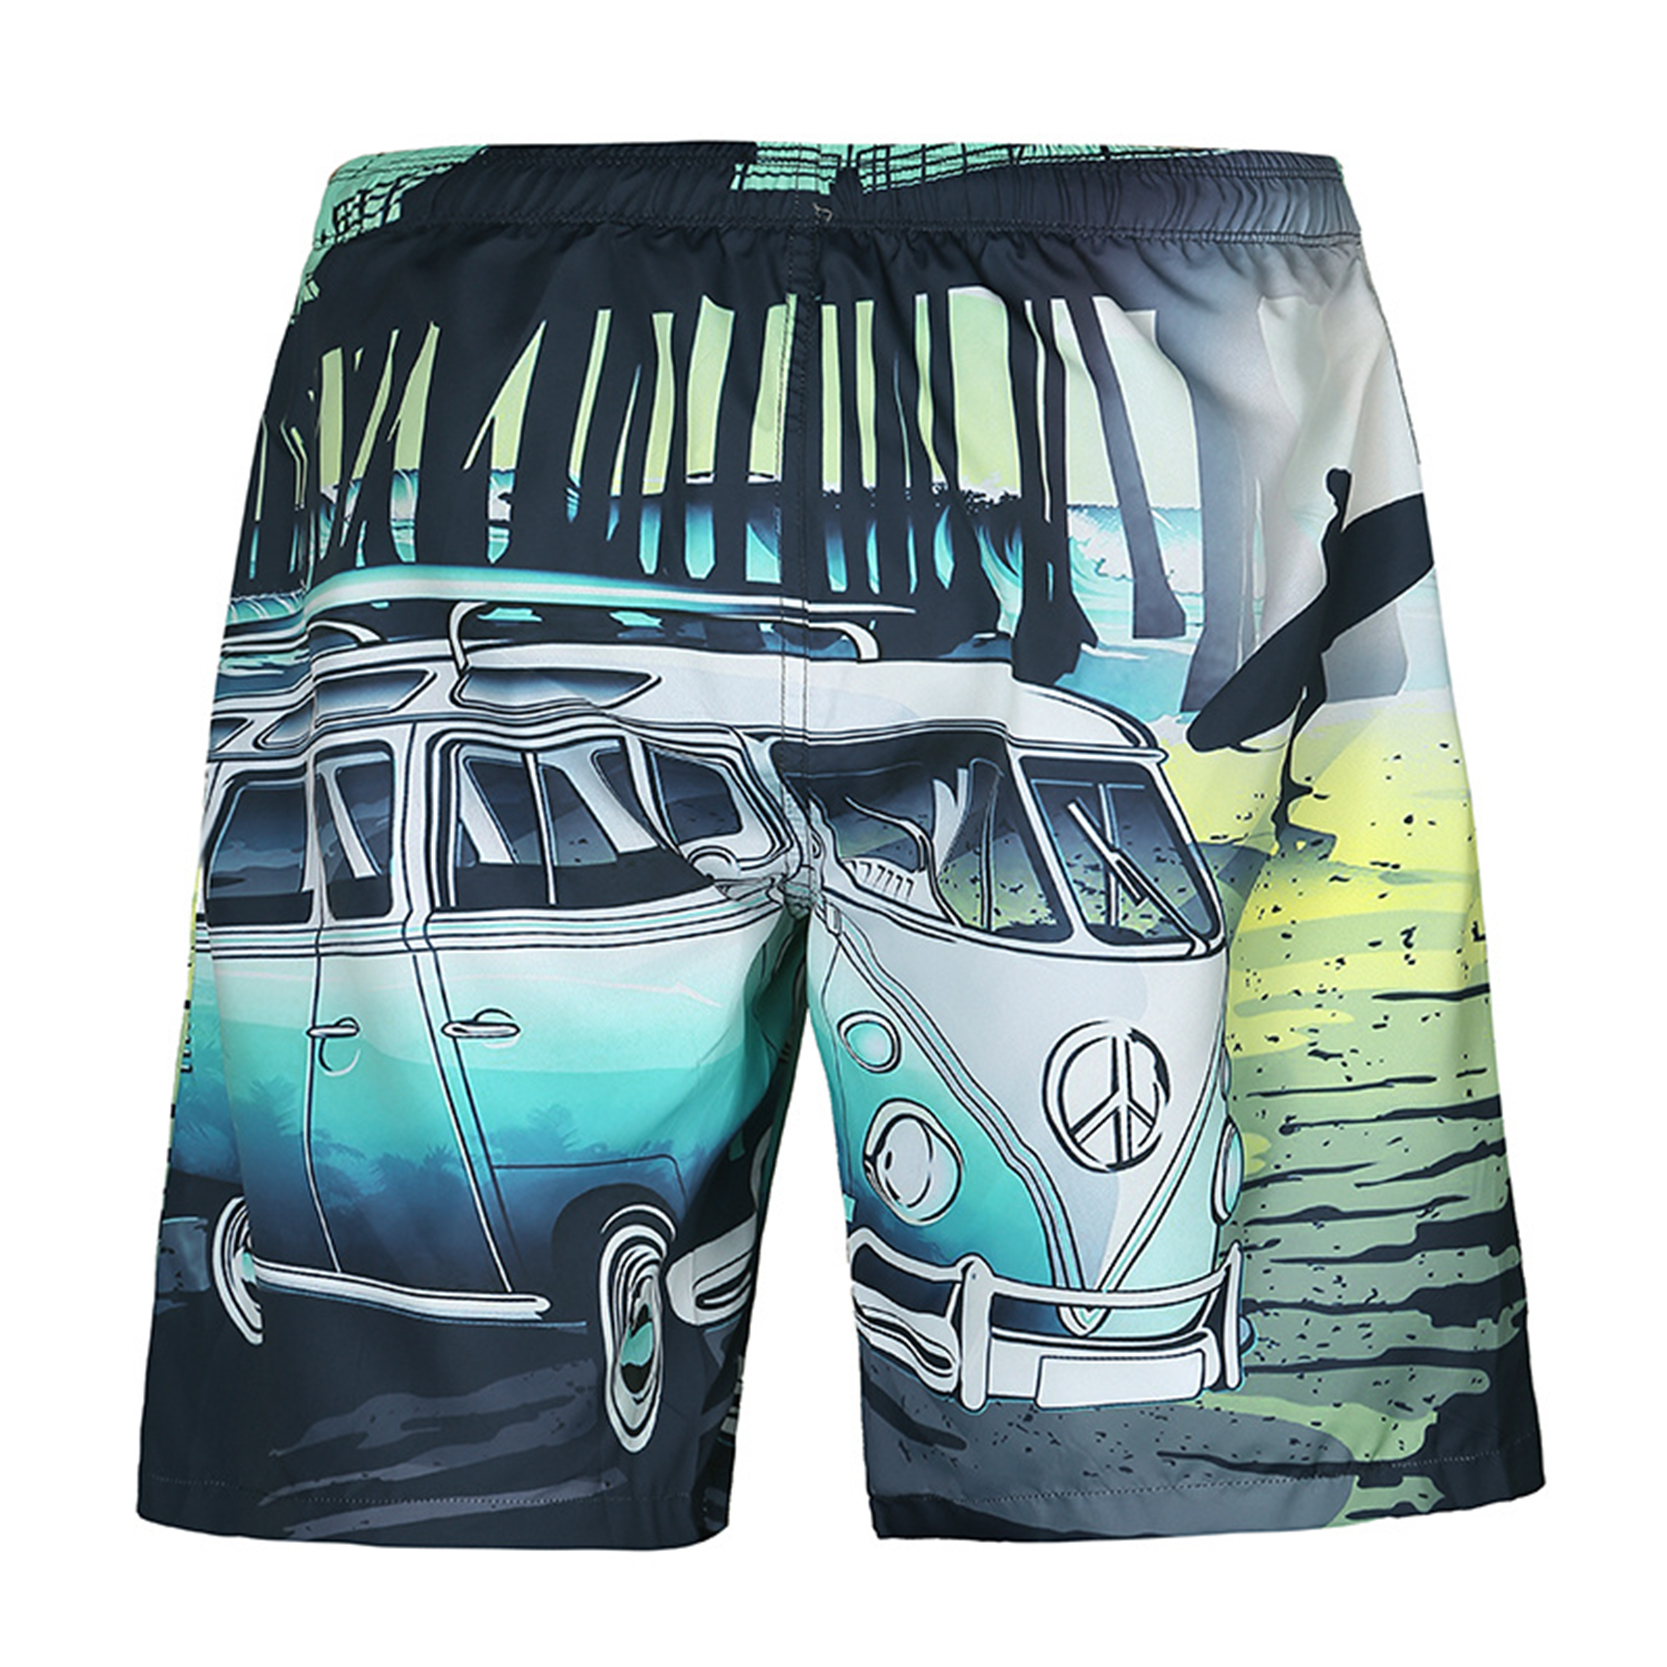 2017 New Arrival Casual Art Bus Printing Shorts Cool Design Men Board Shorts Trendy Ventilation Scenery Fashion Male Dress(China (Mainland))